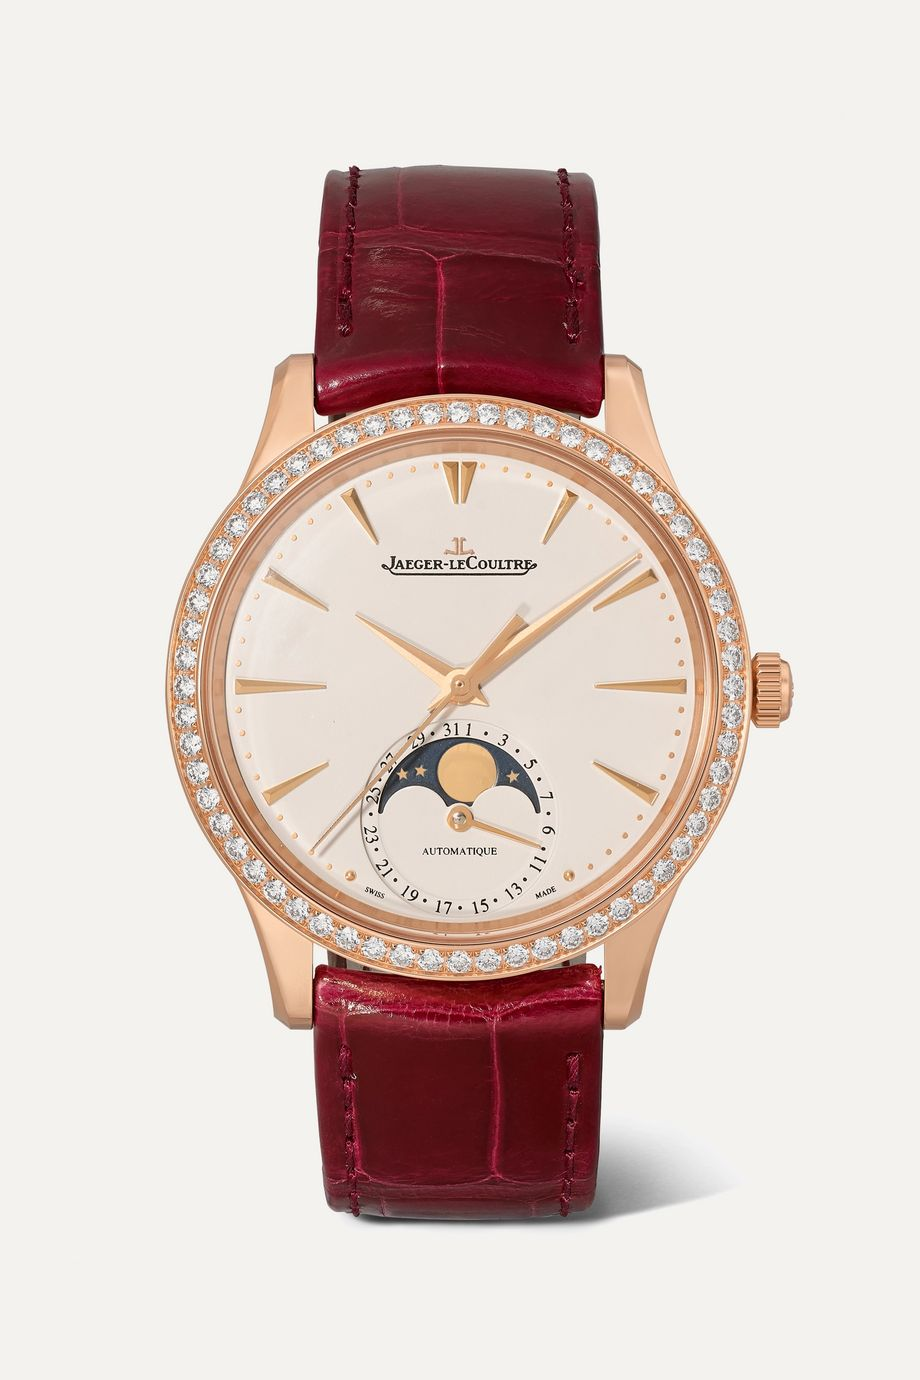 Jaeger-LeCoultre Master Ultra Thin Moon Automatic 34mm rose gold, alligator and diamond watch